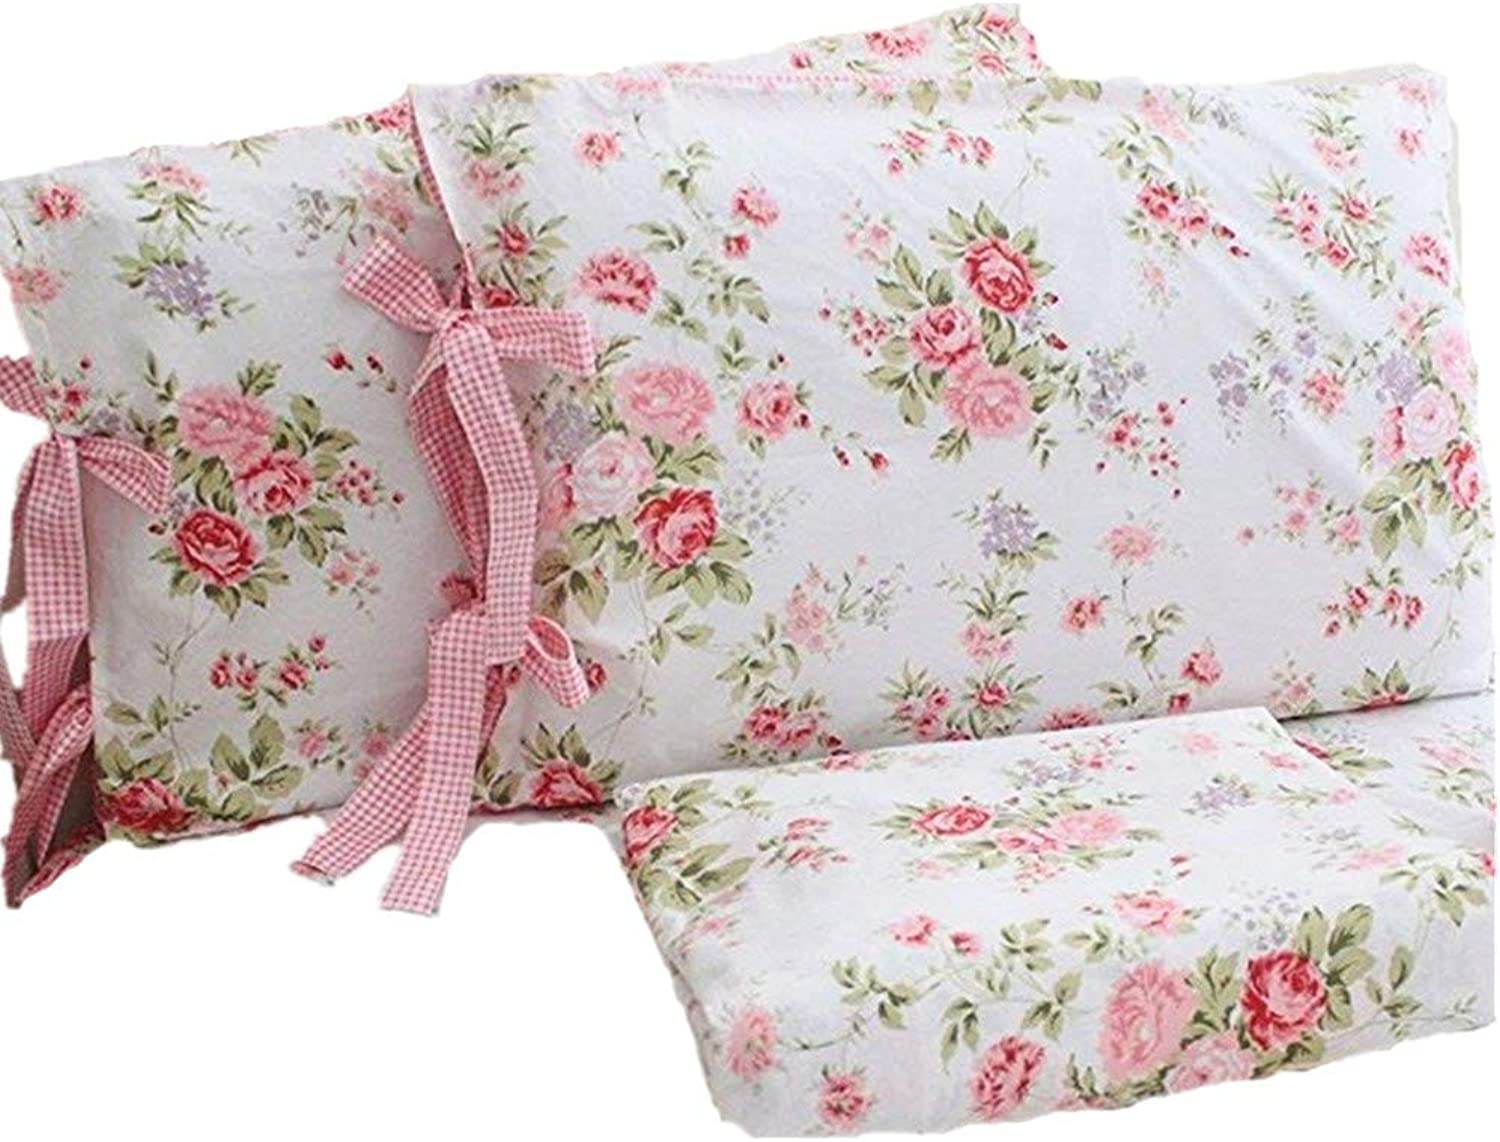 Abreeze Cotton Bed Sheets Set Pink pink Floral Print Sheet Bedding 4-Piece King Size